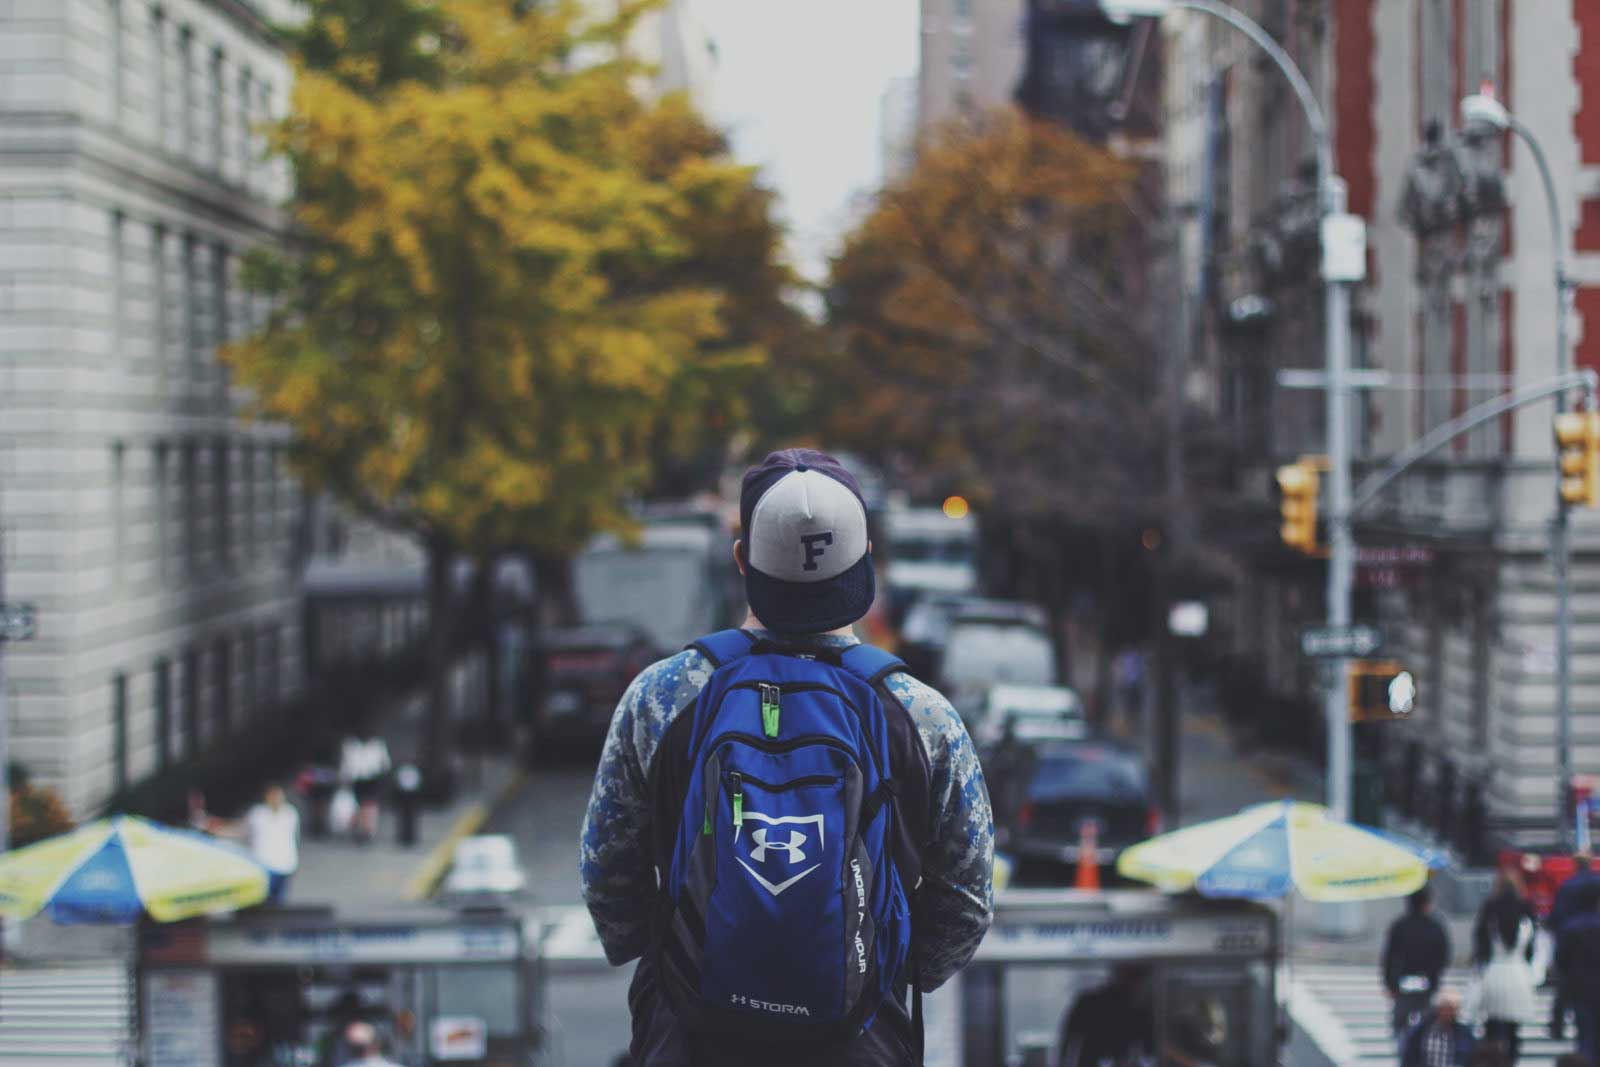 Male with a backpack staring down a city street